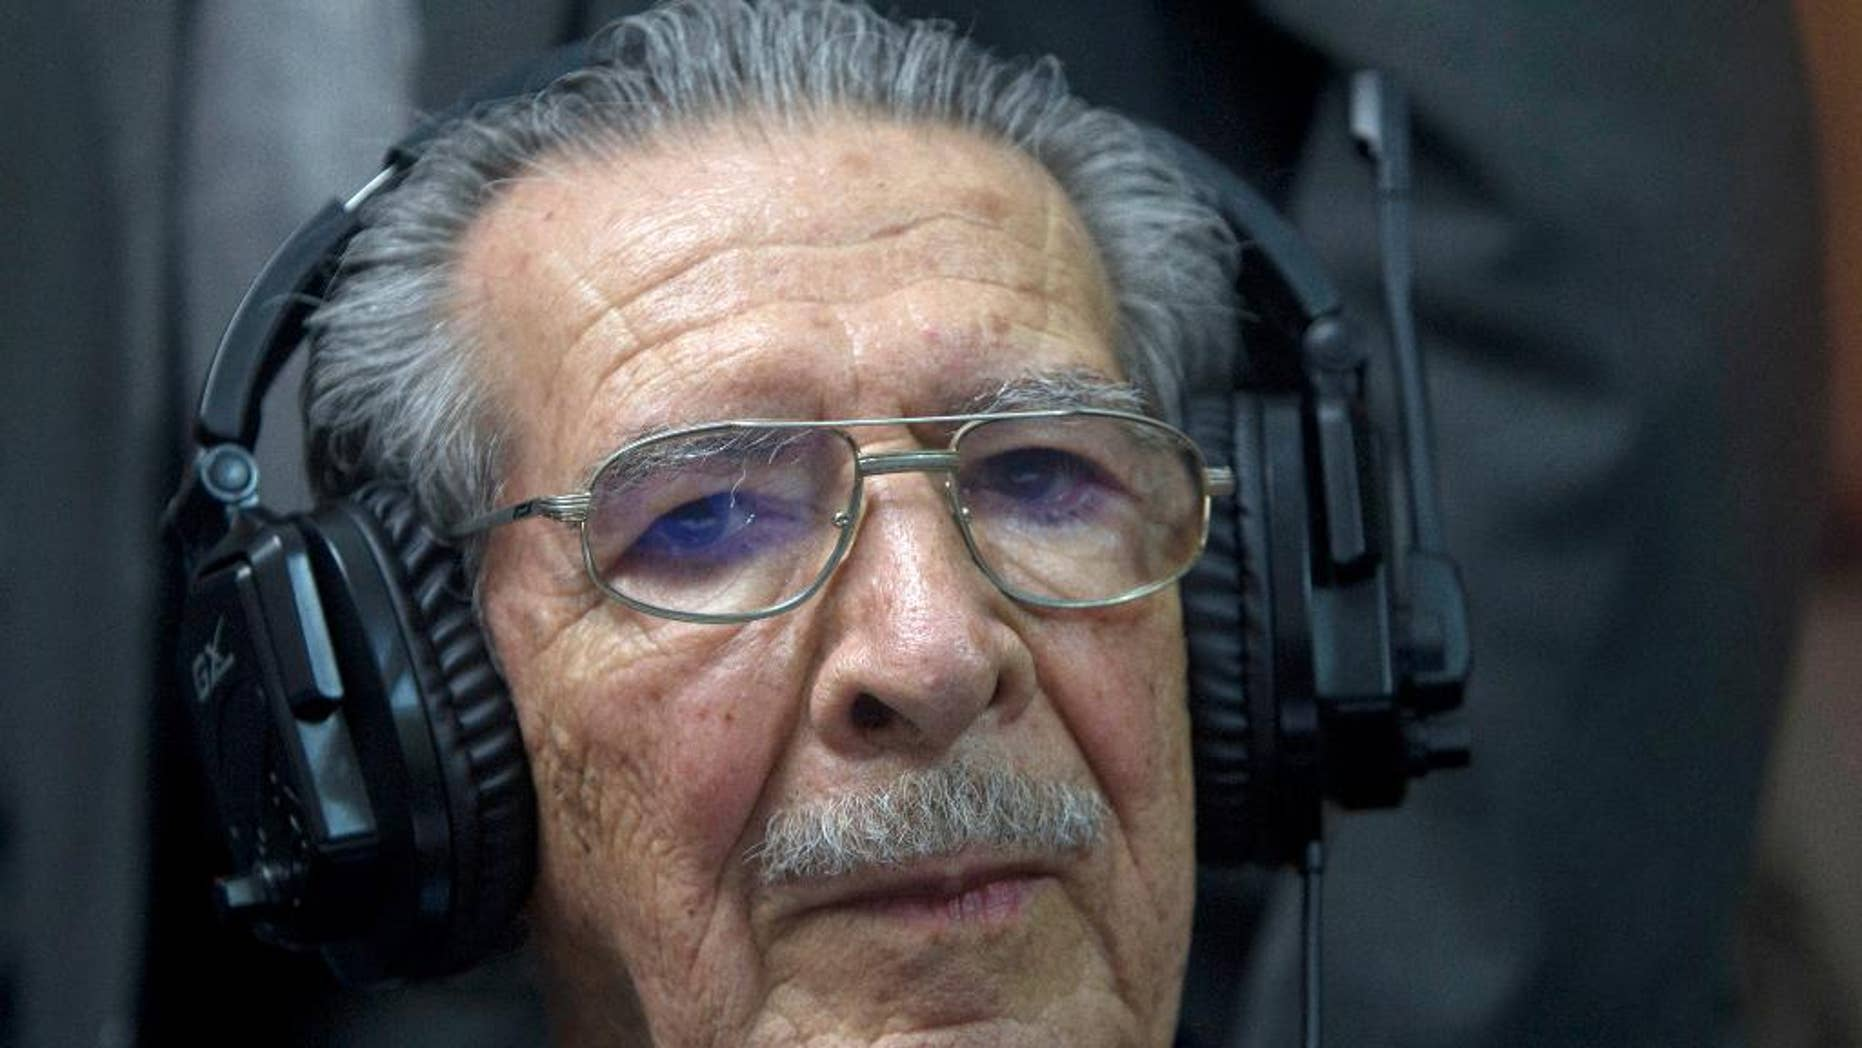 FILE - In this May 10, 2013 file photo, Guatemala's former dictator Jose Efrain Rios Montt wears headphones as he listens to the verdict in his genocide trial in Guatemala City. In an expert opinion dated July 1, 2015 and sent to the judge overseeing the first stage of Rios Montt's case, the 89-year-old was determined by Guatemala's National Institute of Forensic Sciences to be incapable of understanding the charges against him and of participating in his own defense. Prosecutors say Rios Montt is responsible for the deaths of almost 2,000 Mayan Indians, killed by the army between 1982 and 1983. (AP Photo/Moises Castilo, File)